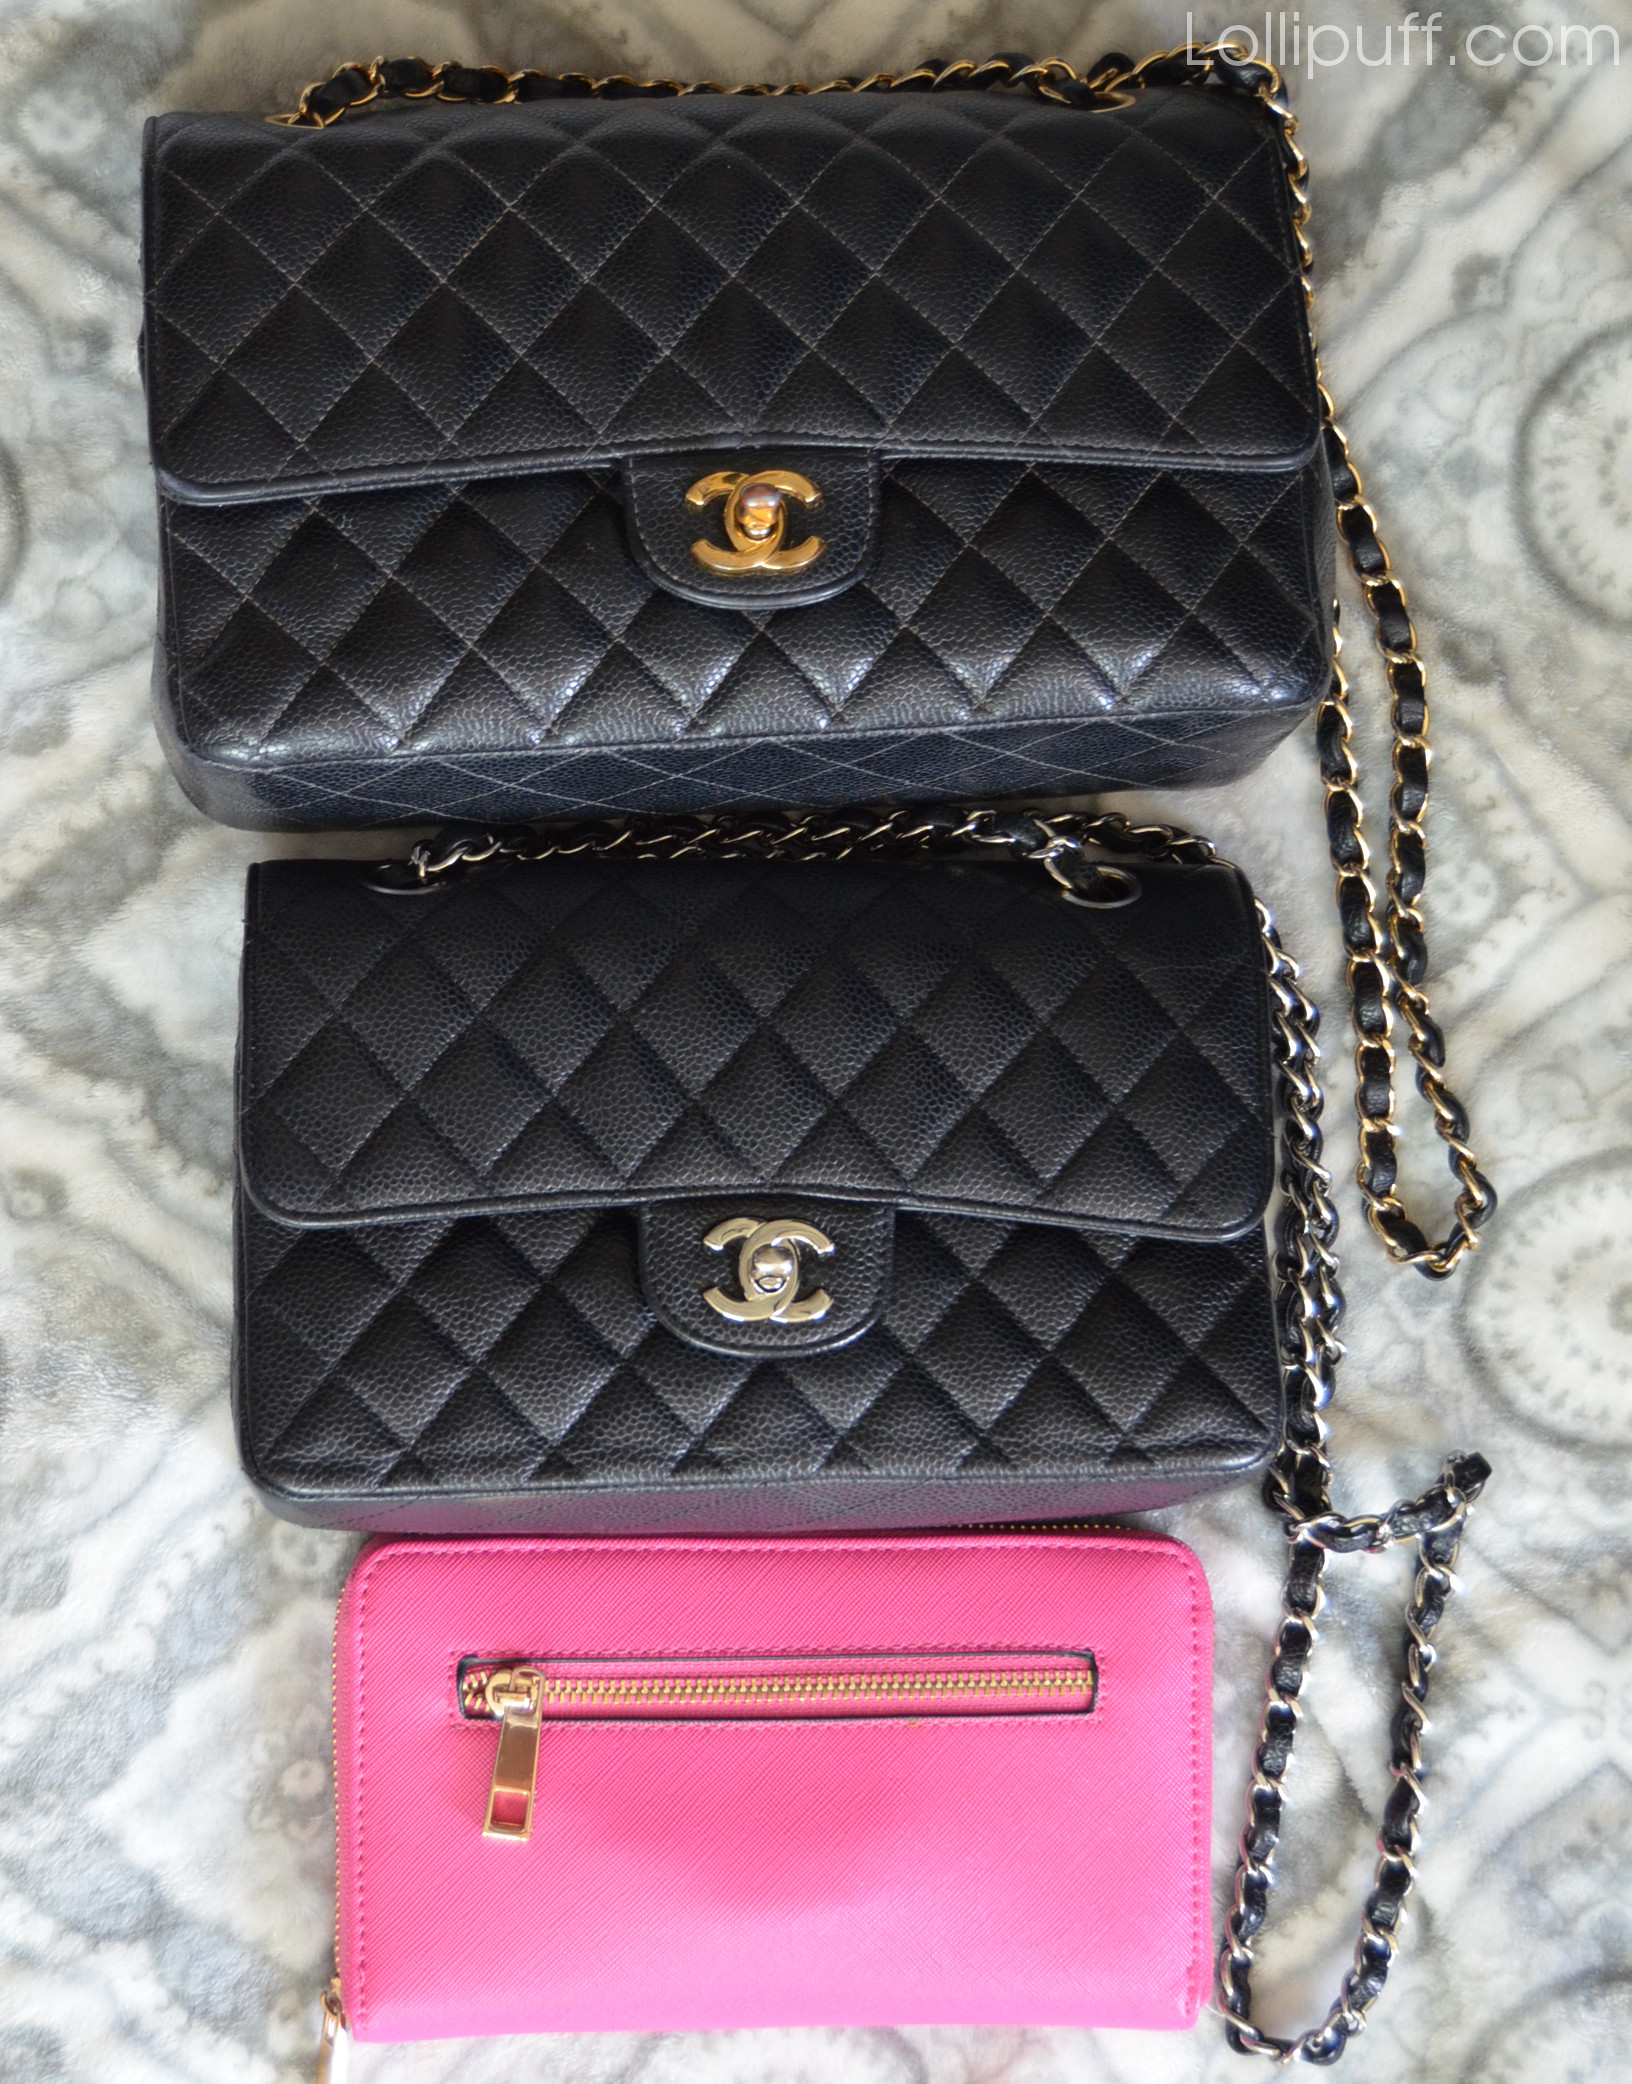 size difference and holding capacity of Chanel small vs medium double flap bag